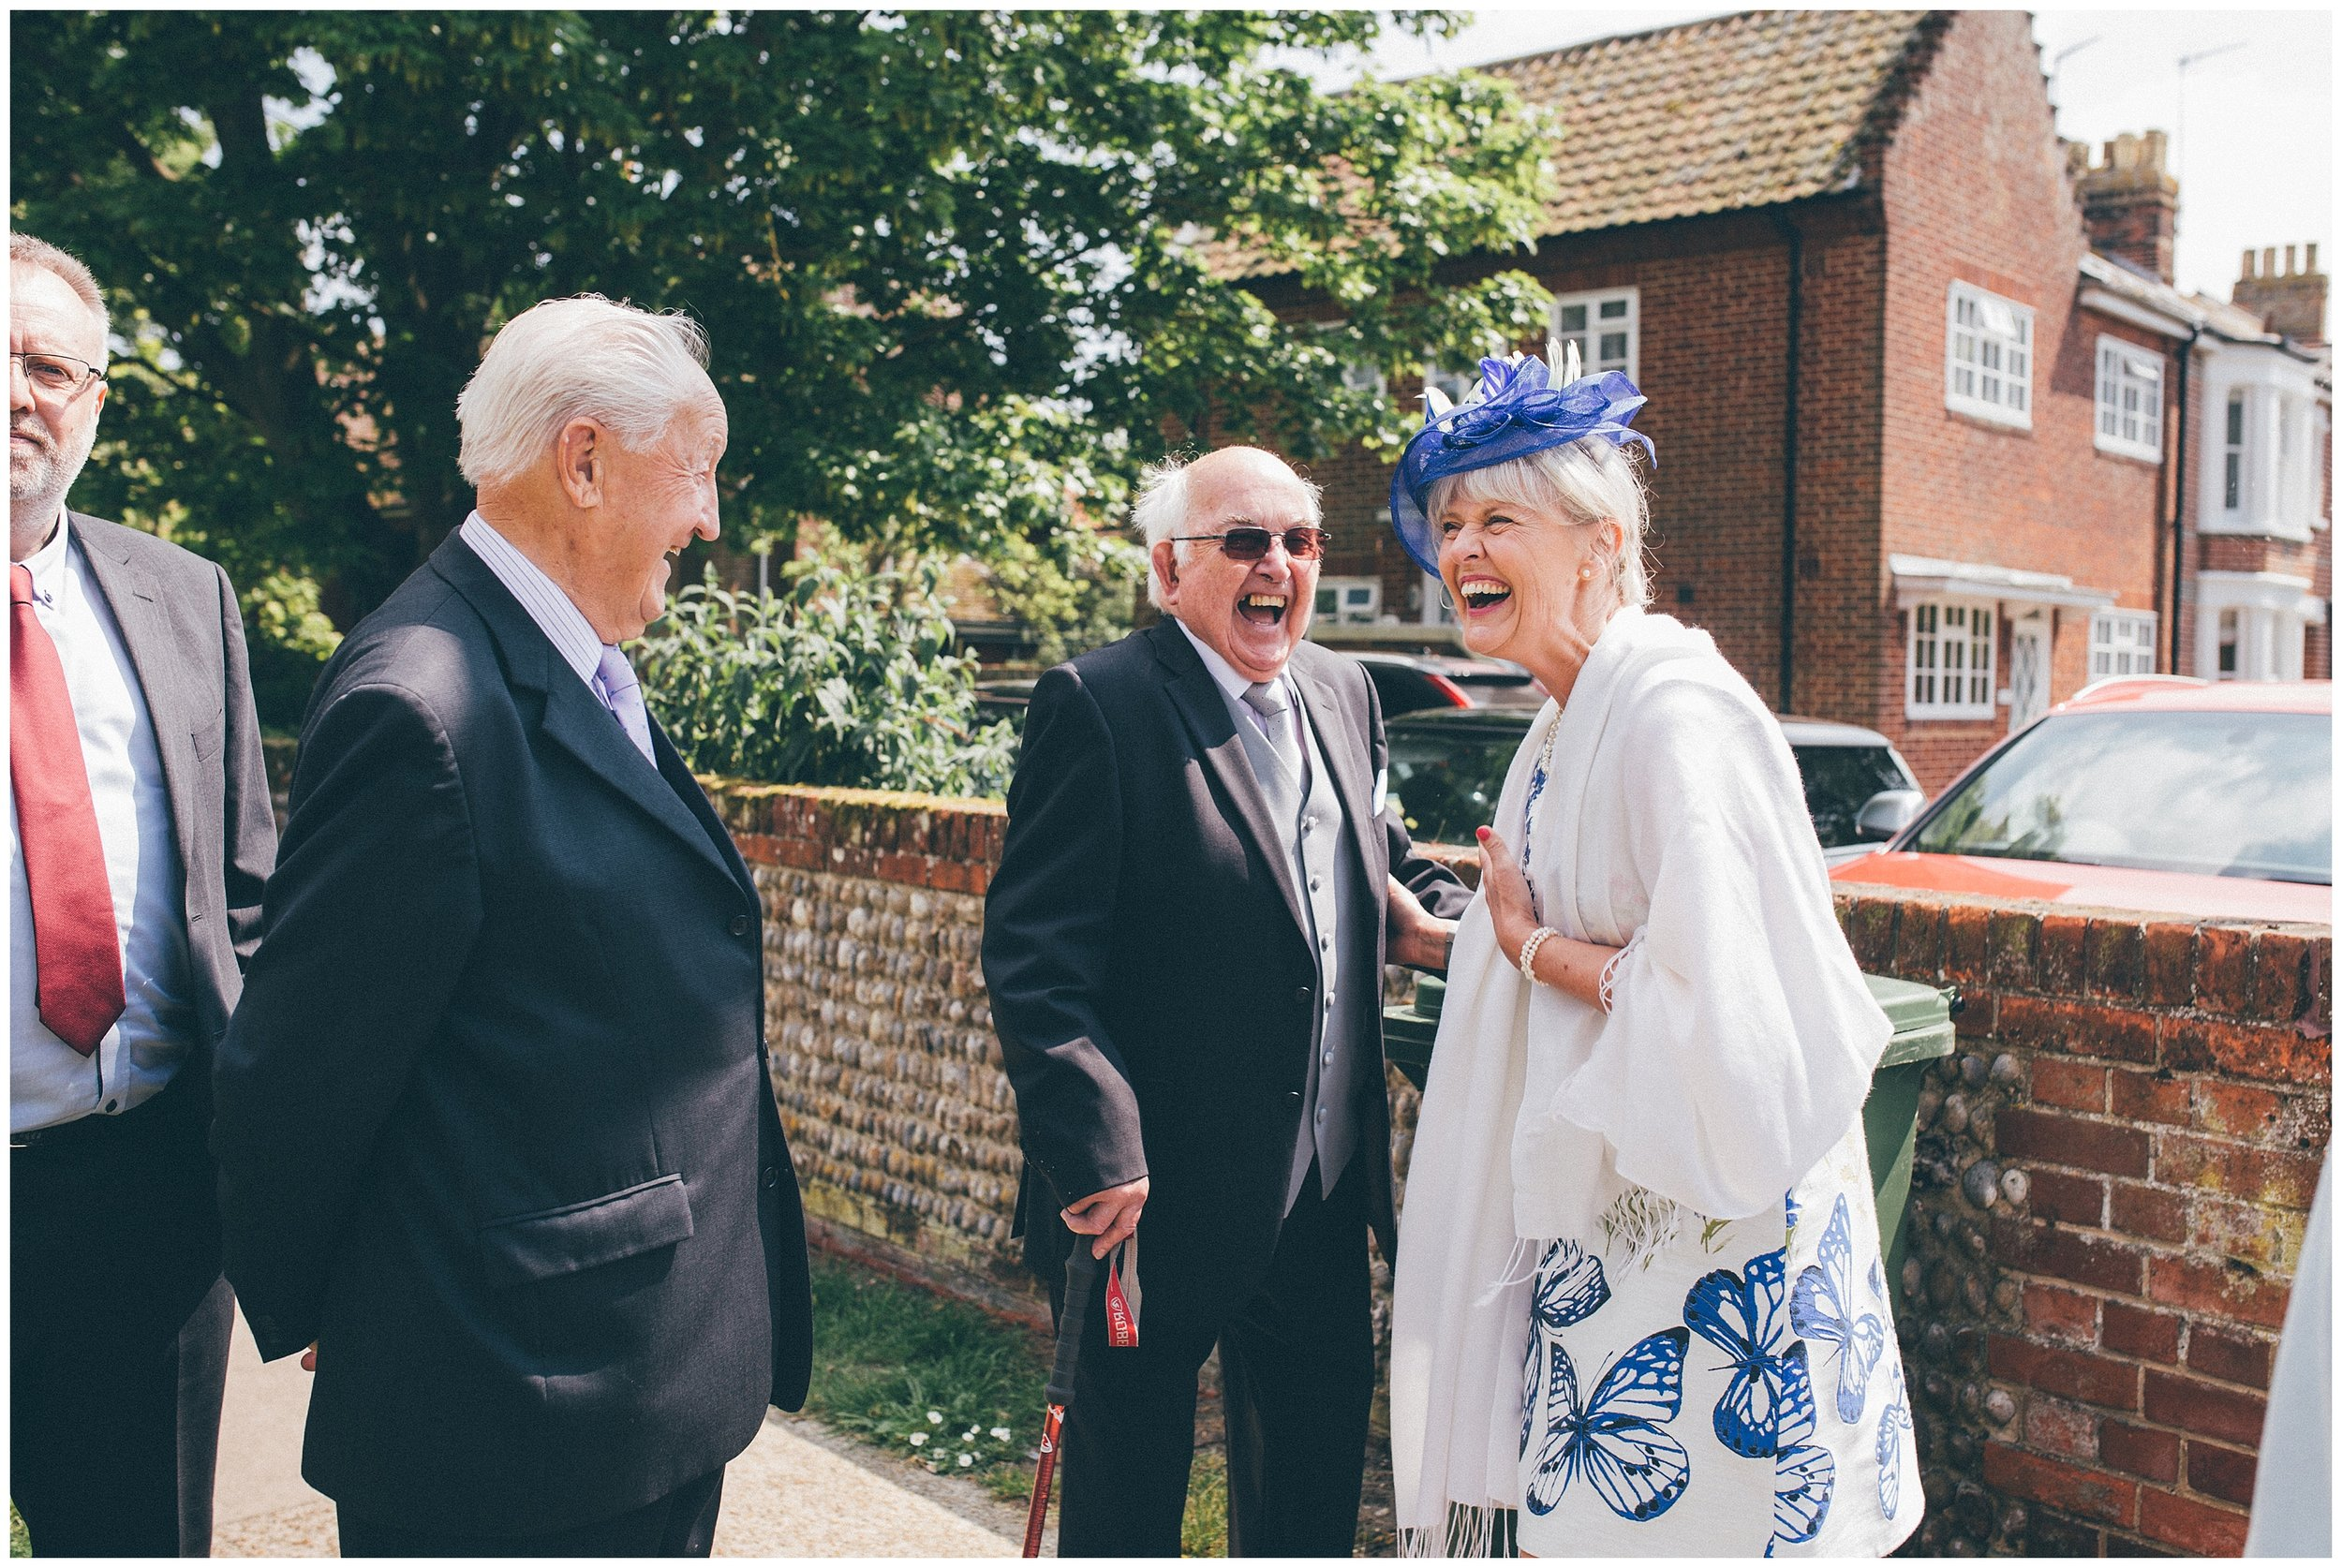 Guests at a Wedding at St Edmunds Church in Southwold.